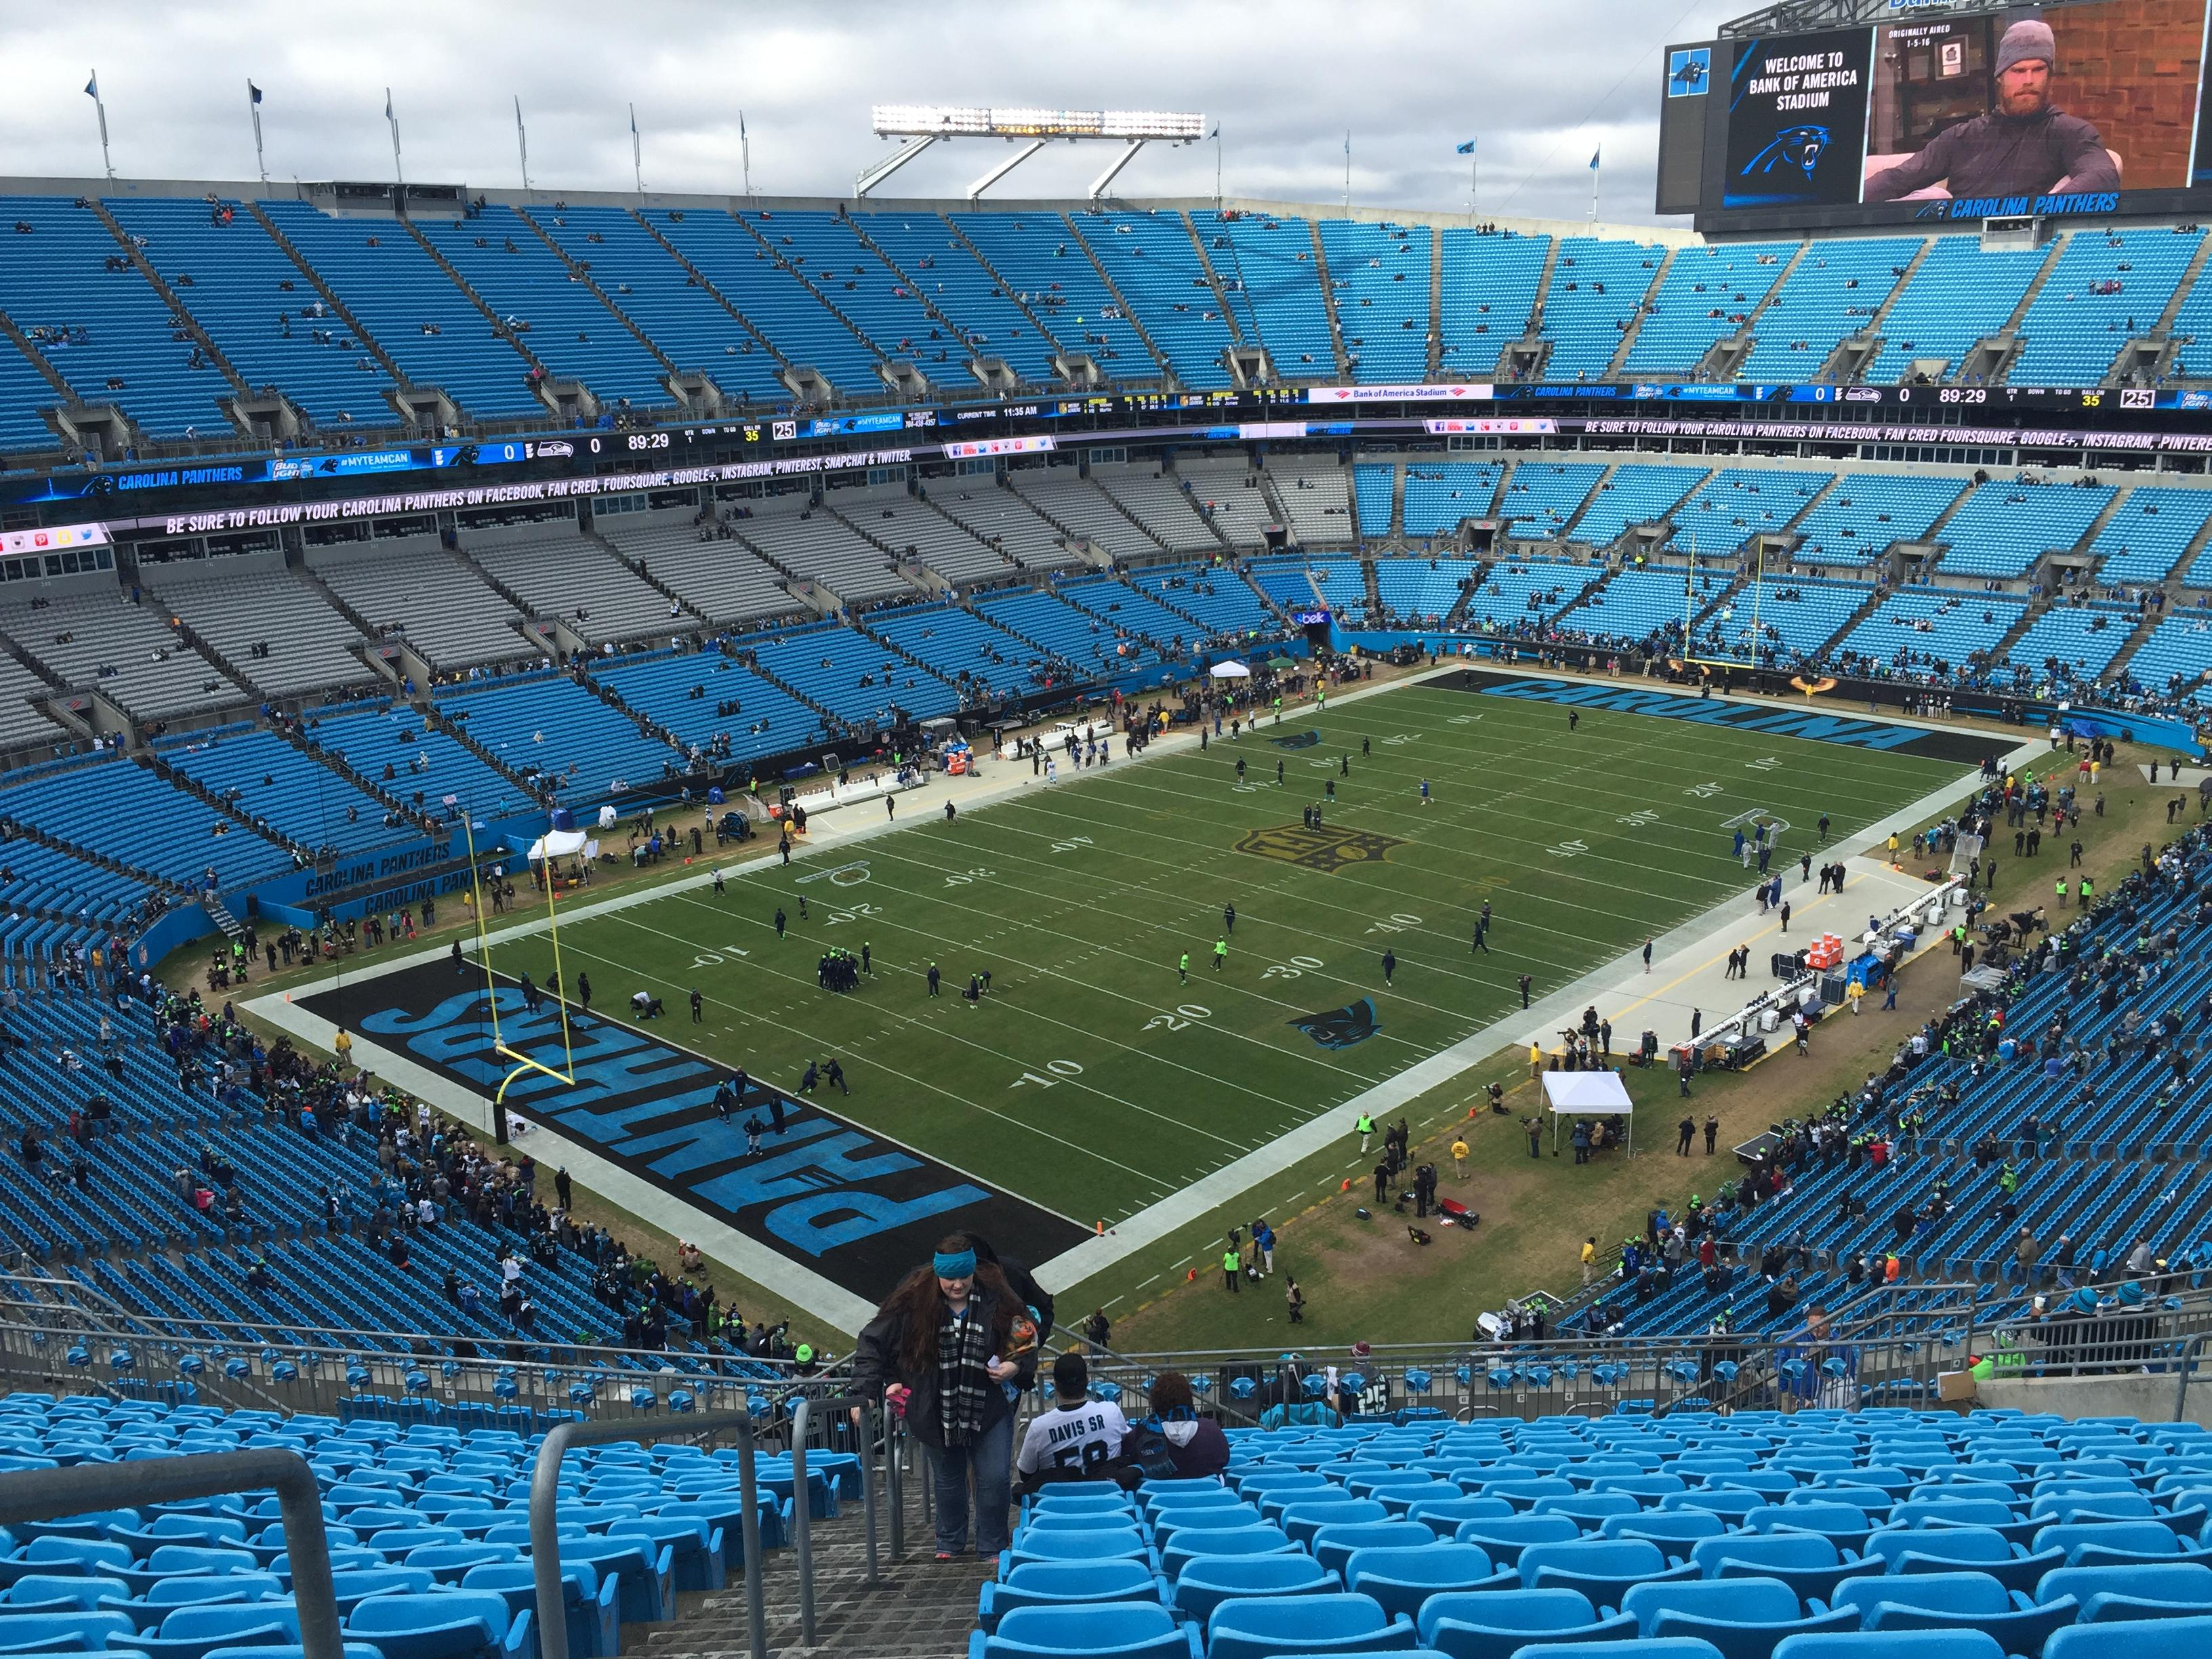 Bank of America Stadium section 522 row 17 seat 21